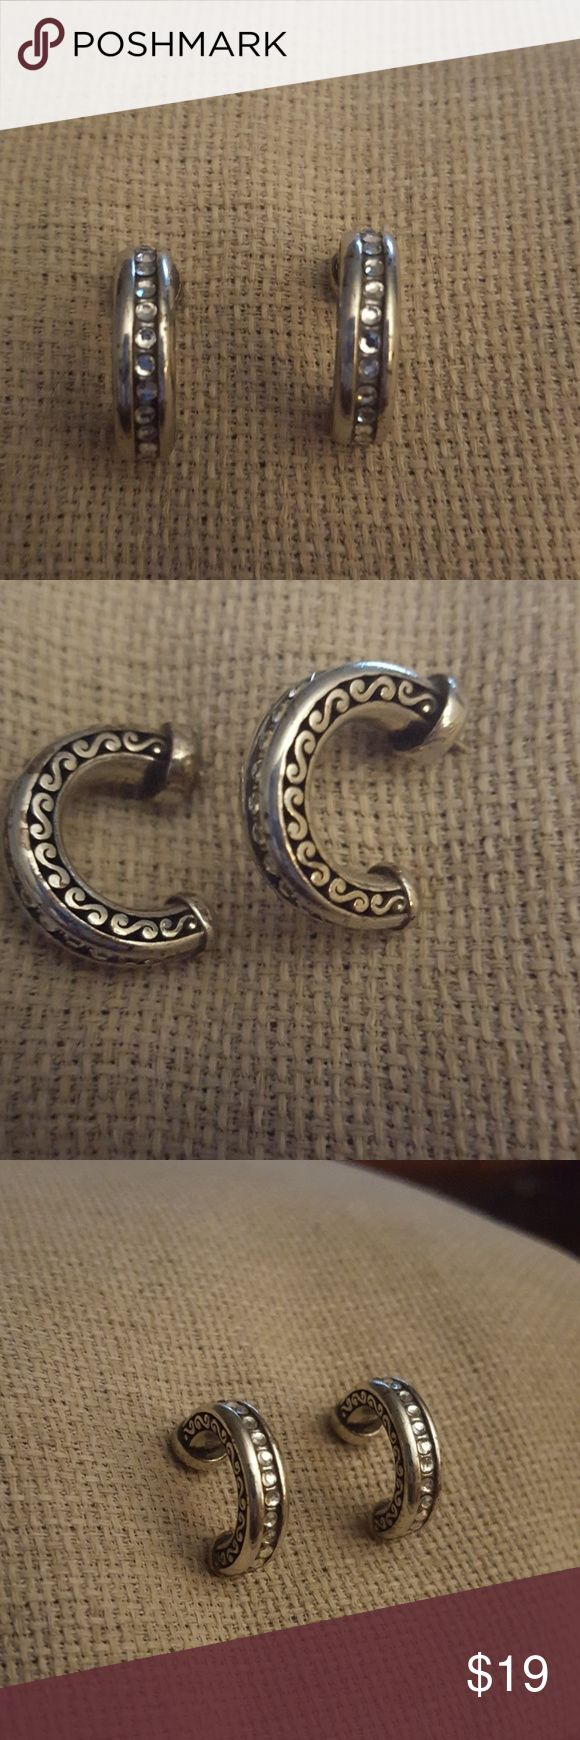 Ageless BRIGHTON earrings! Great hoops with crystals in the front. They look like diamonds Brighton Jewelry Earrings